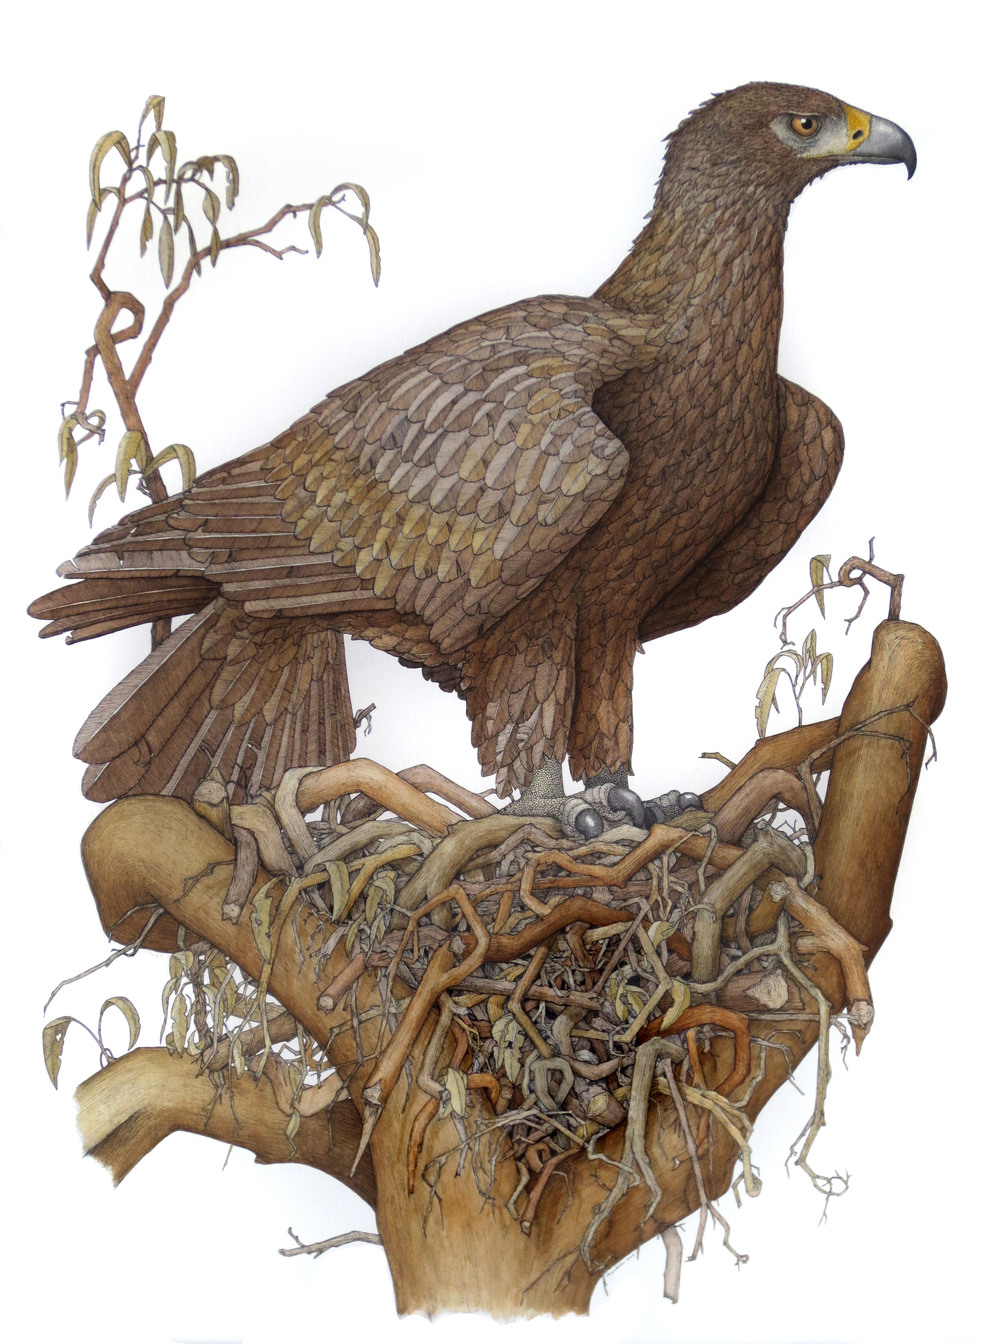 'Wedge Tailed Eagle with Nest'